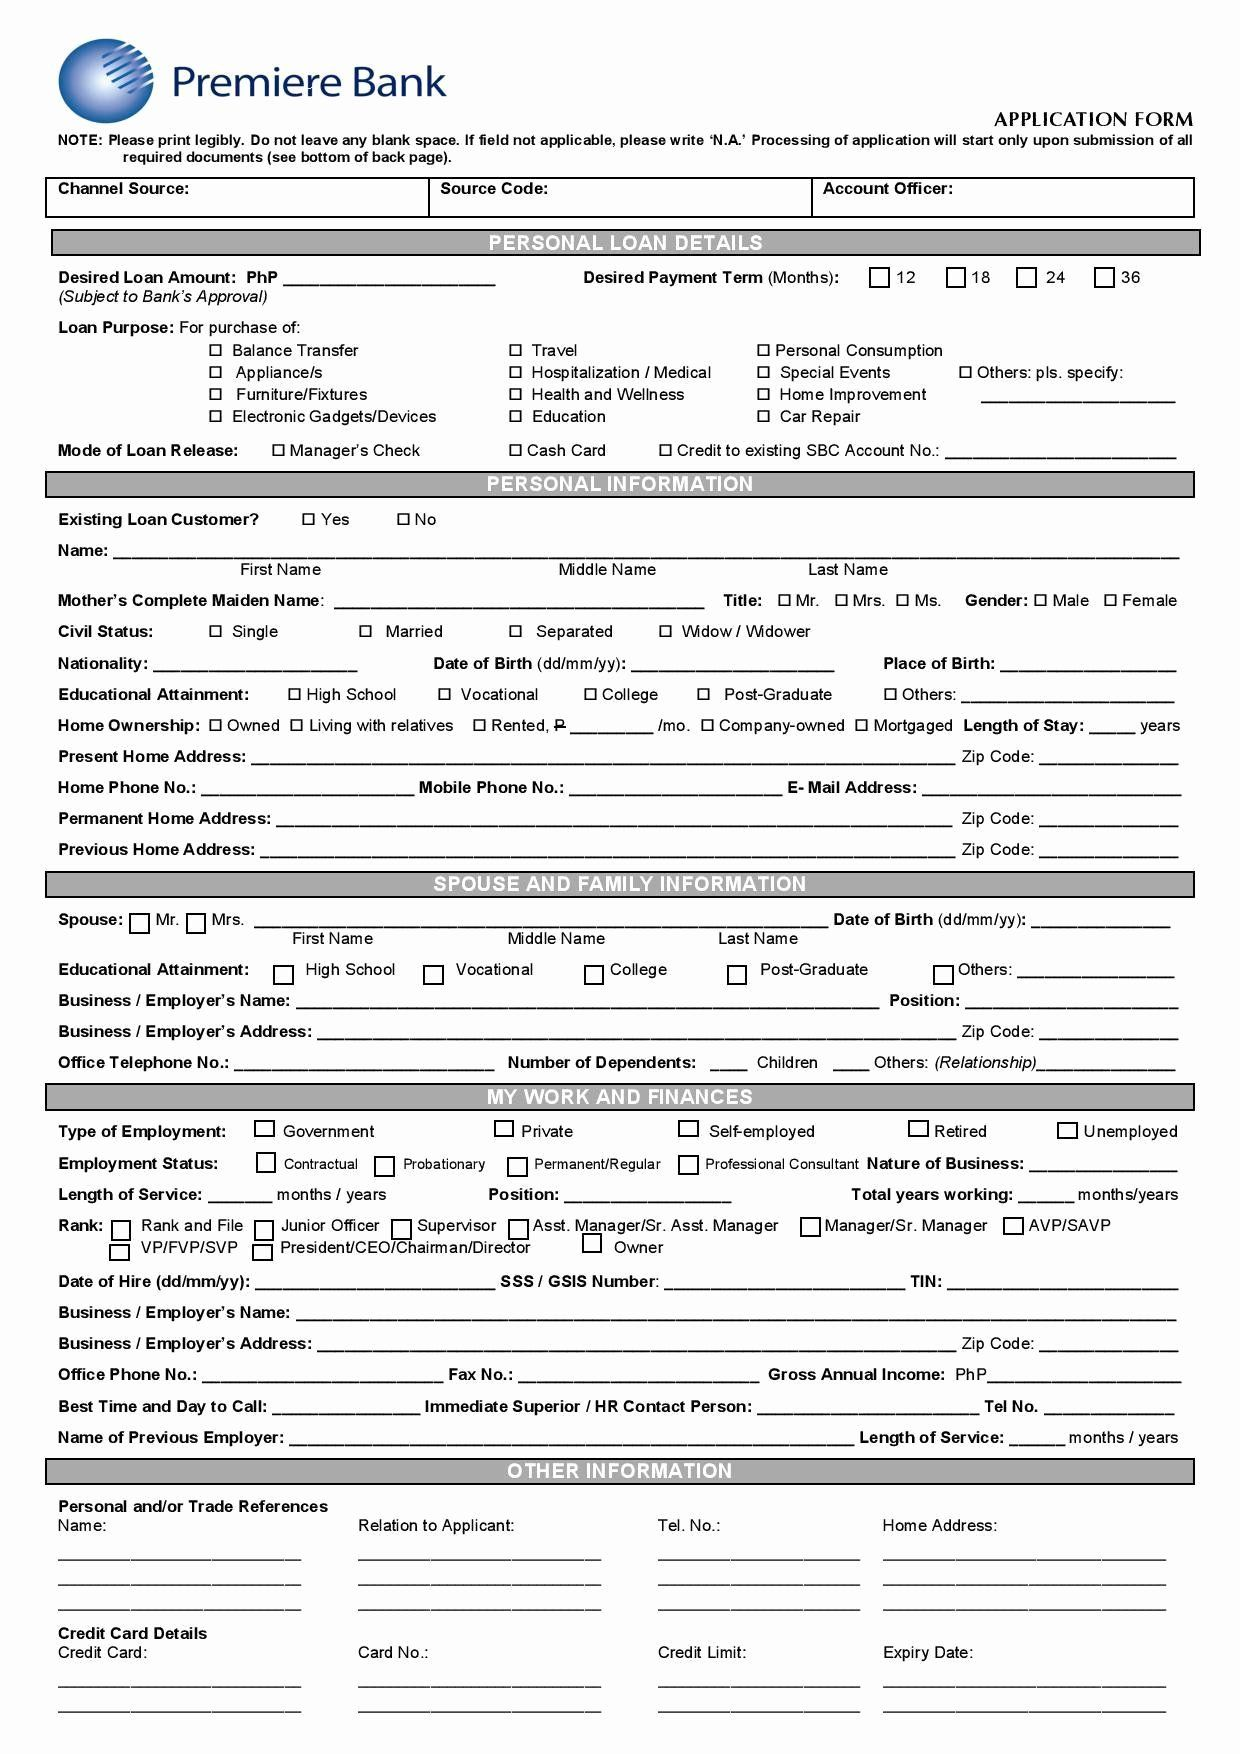 Personal Loan Application Form Template Inspirational 28 Of Bank Loan Request Forms Template In 2020 Personal Loans Loan Application Application Form